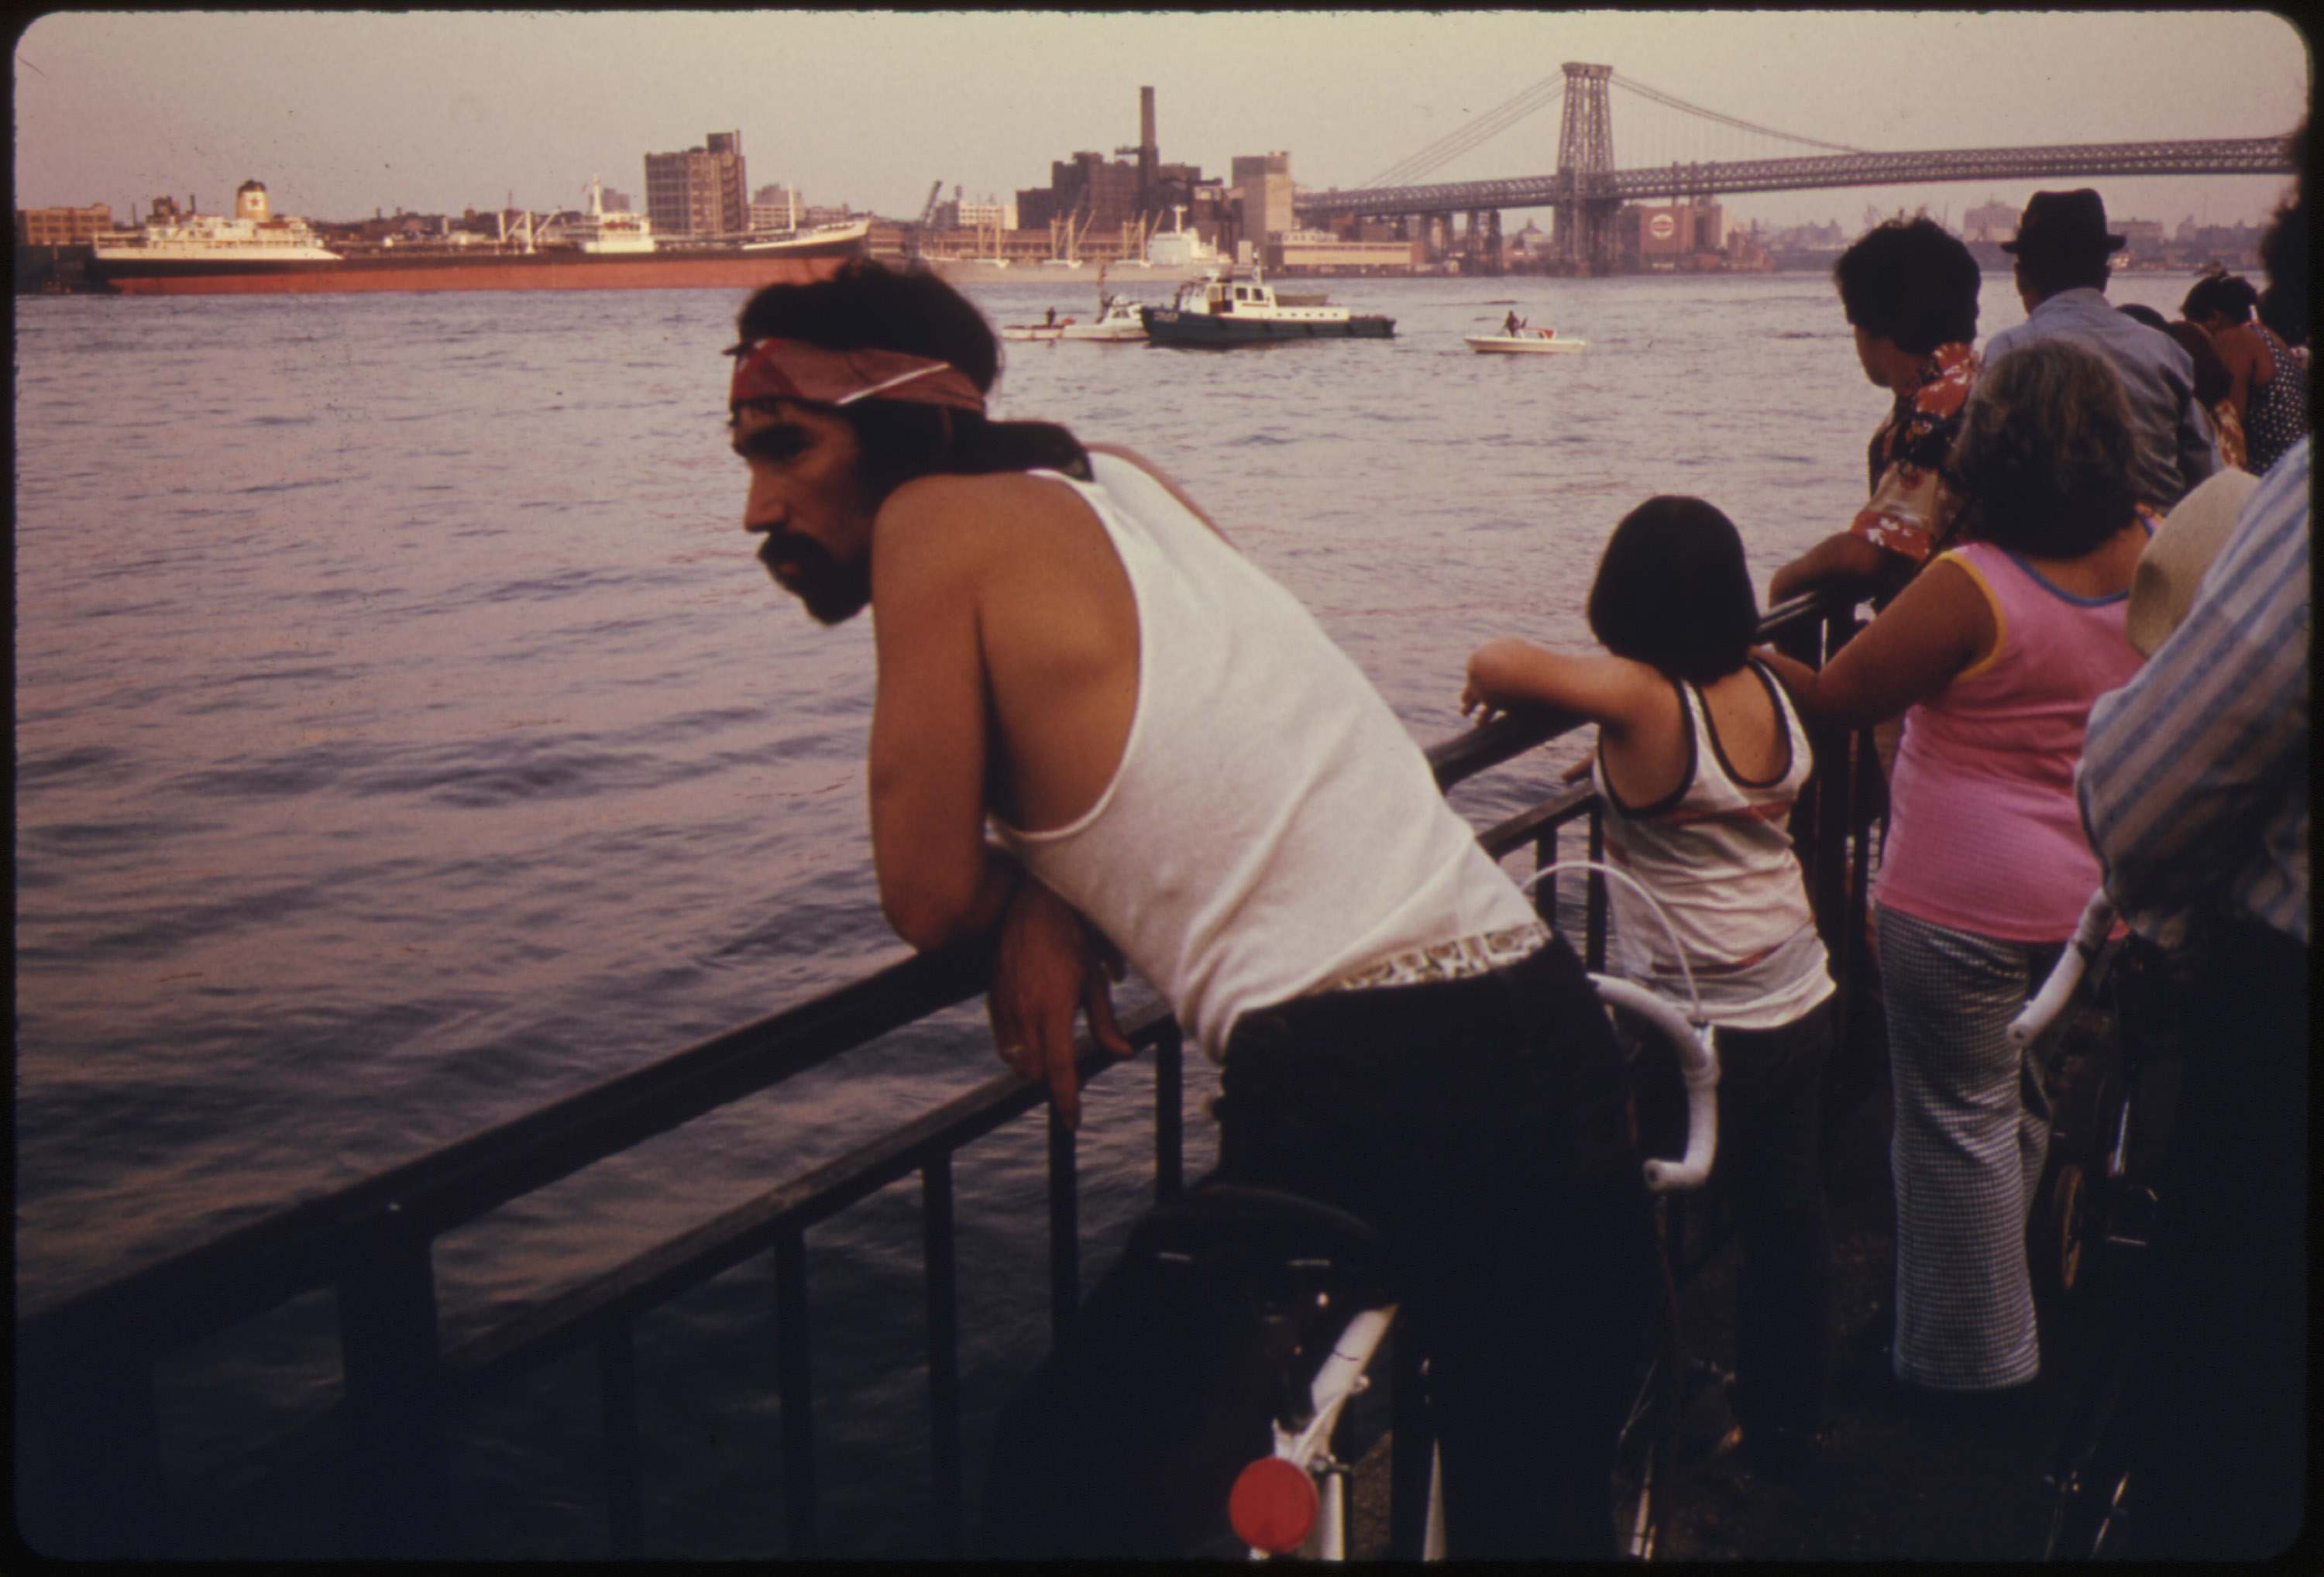 People looking at boat traffic on the East River with the Manhattan Bridge and NYC in the background, July 1974.Documerica: Danny Lyon's Photos of New York City in the Summer of 1974